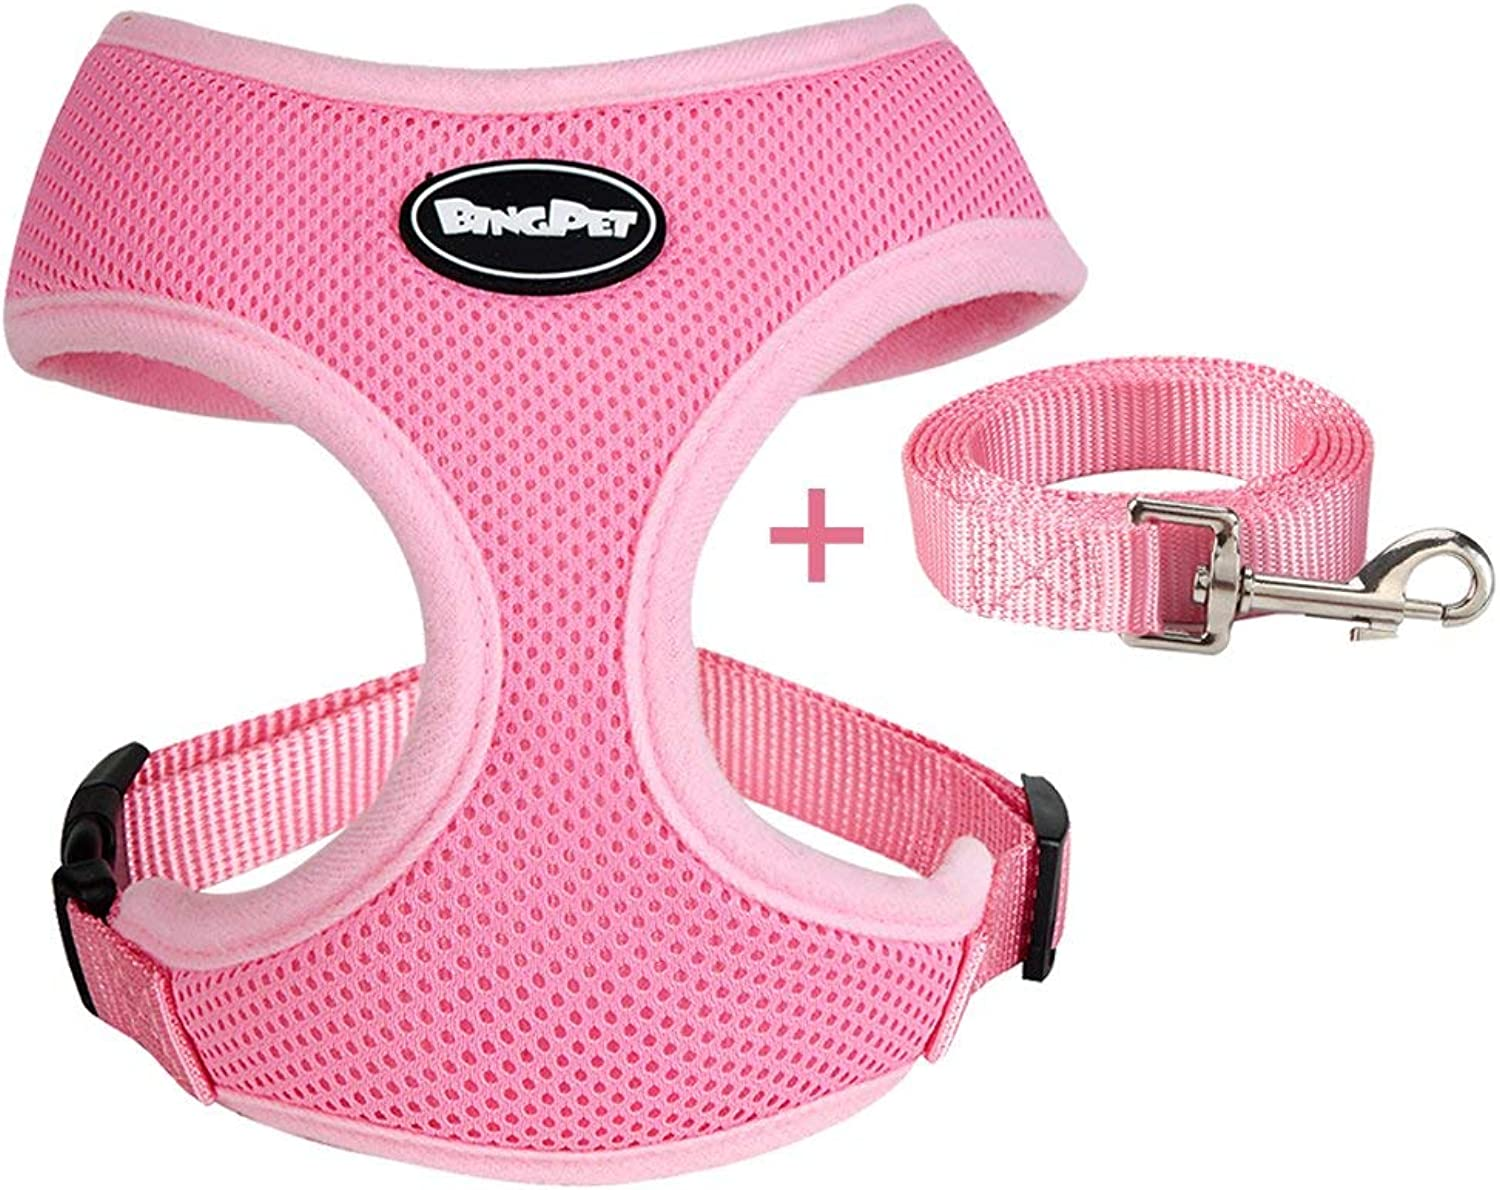 BINGPET Small Dog Harness and Leash  Soft Puppy Vest for Cat, Pink Small